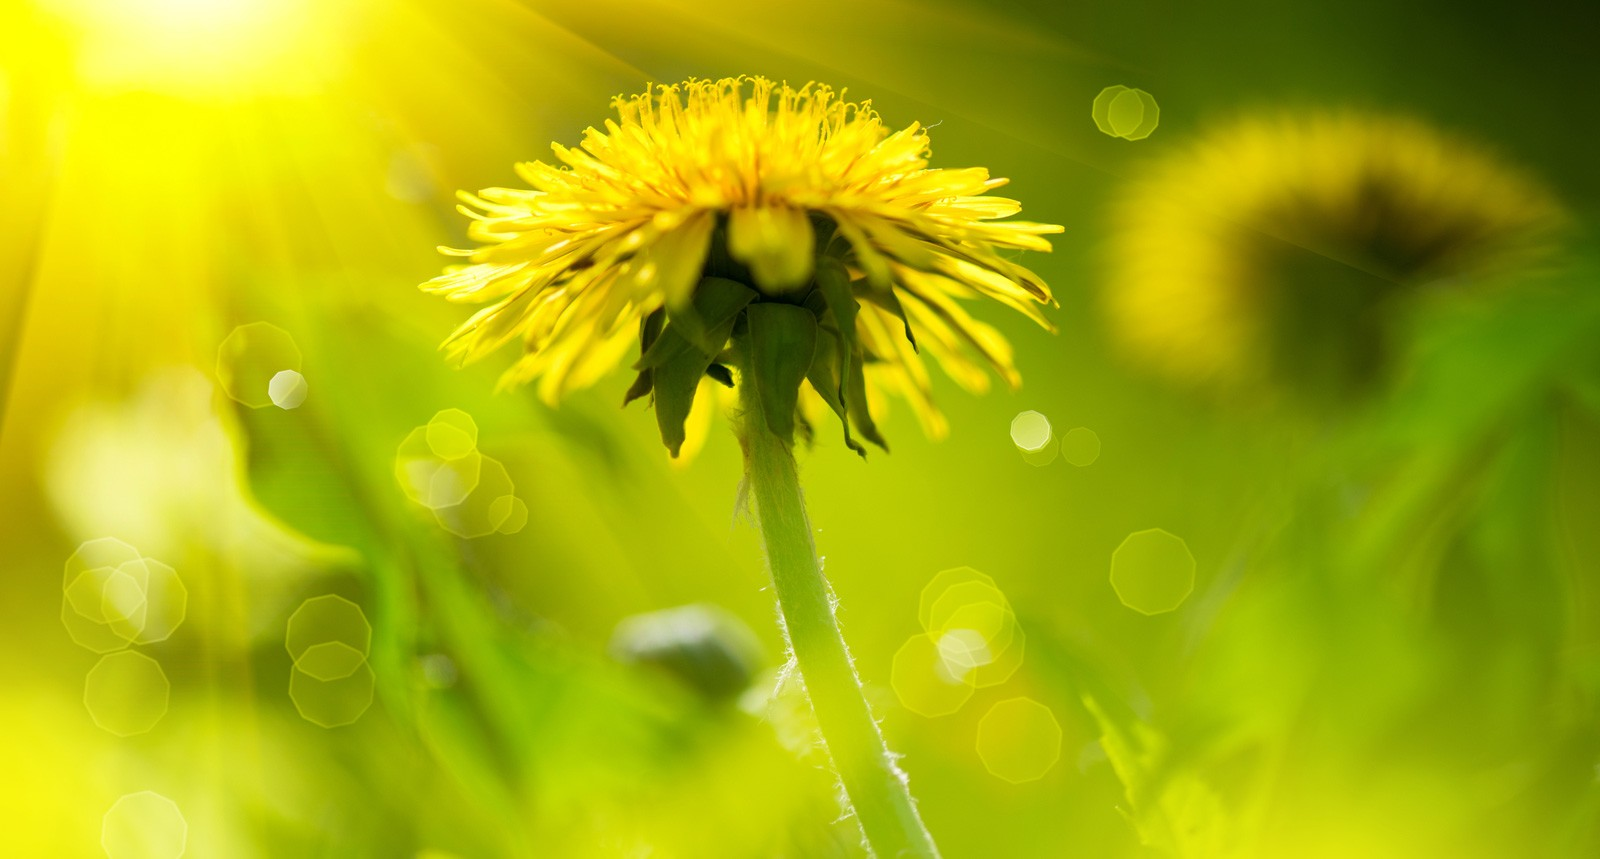 Sassy symbolic dandelion meanings on whats your sign symbolic dandelion meanings izmirmasajfo